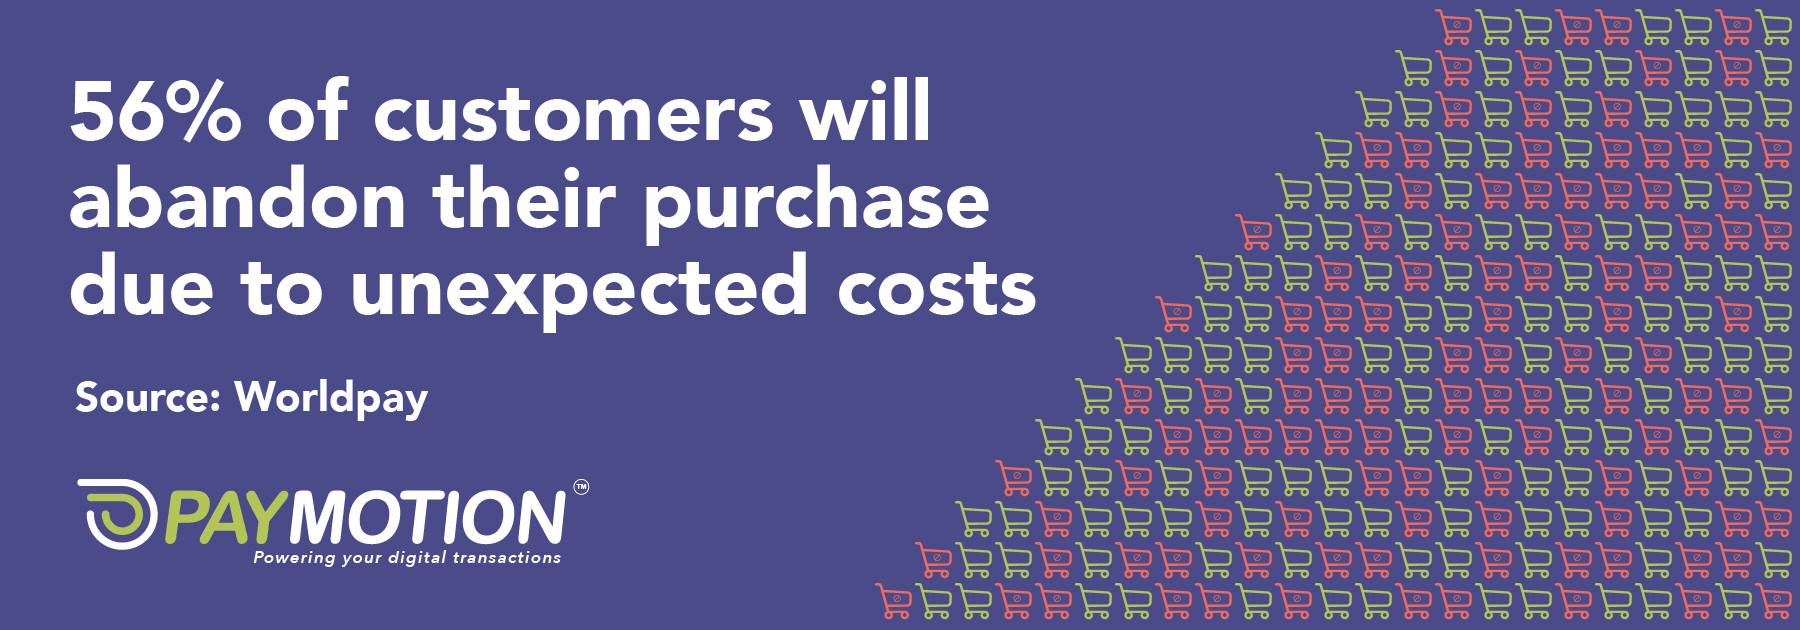 56% of customers will abandon their purchase due to unexpected costs